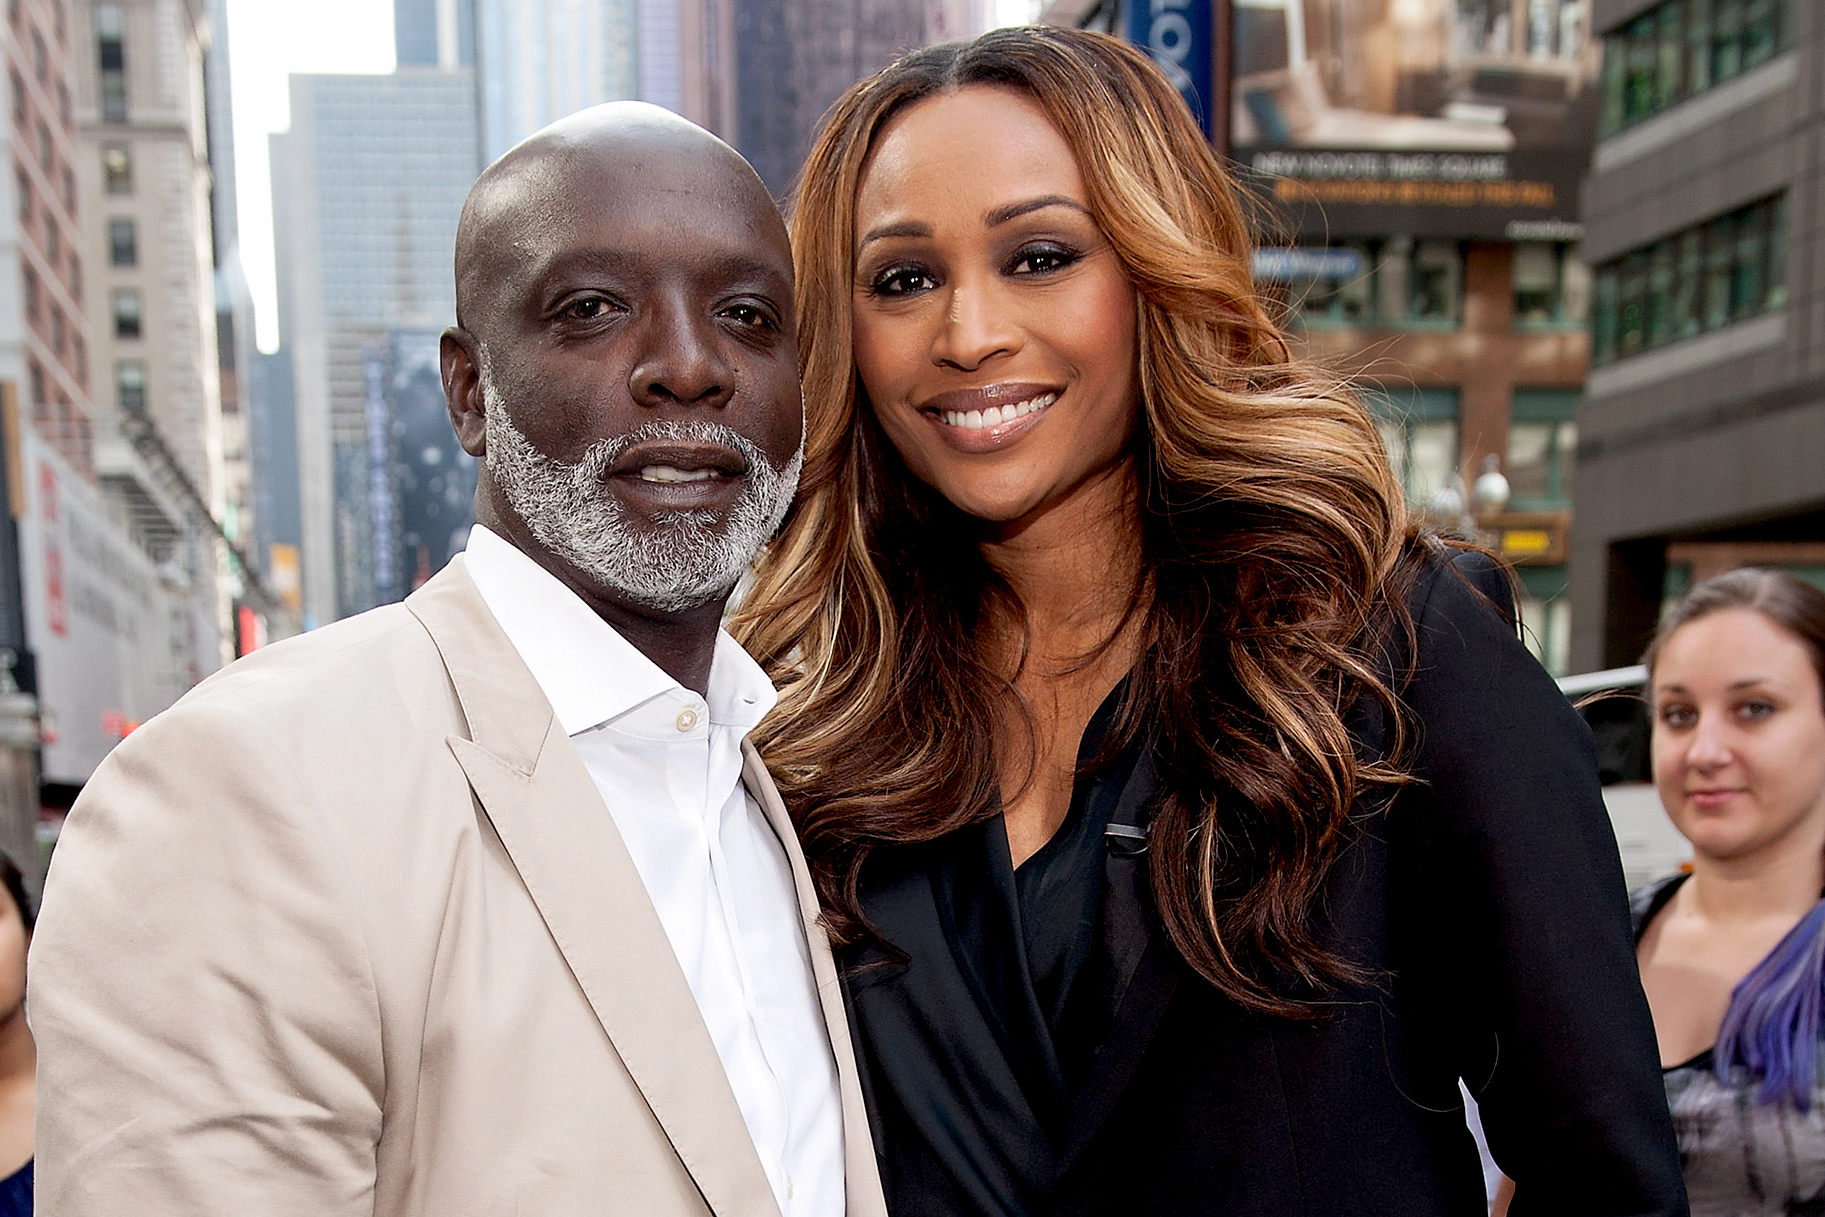 Peter Thomas Arrested For Allegedly Writing Fake Checks